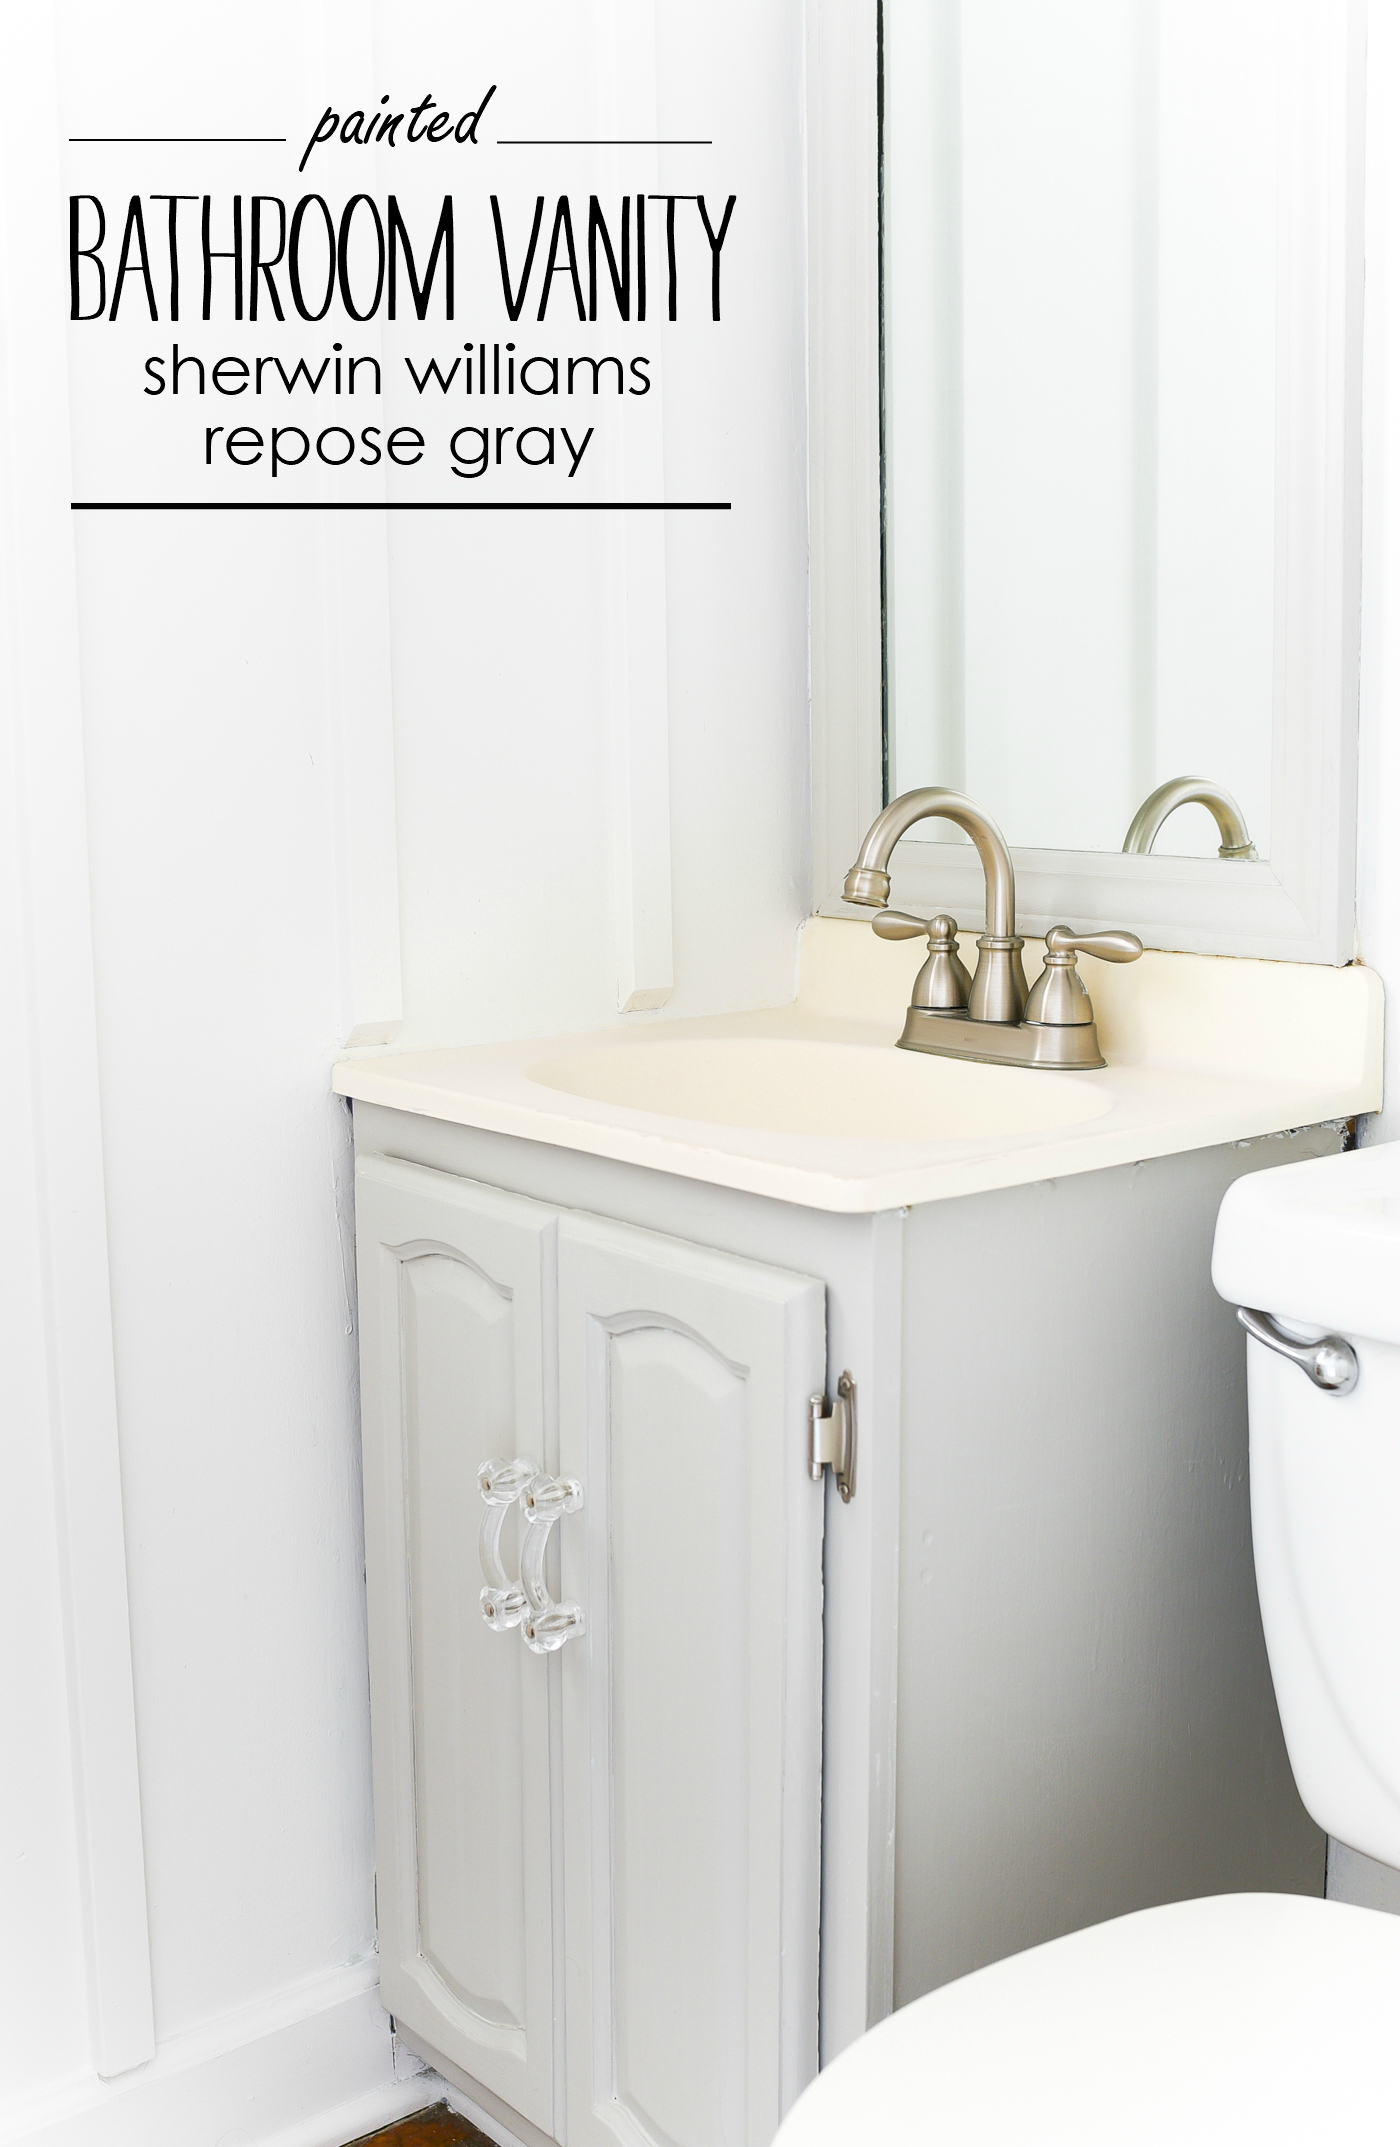 Gray Painted Bathroom Vanity - It All Started With Paint